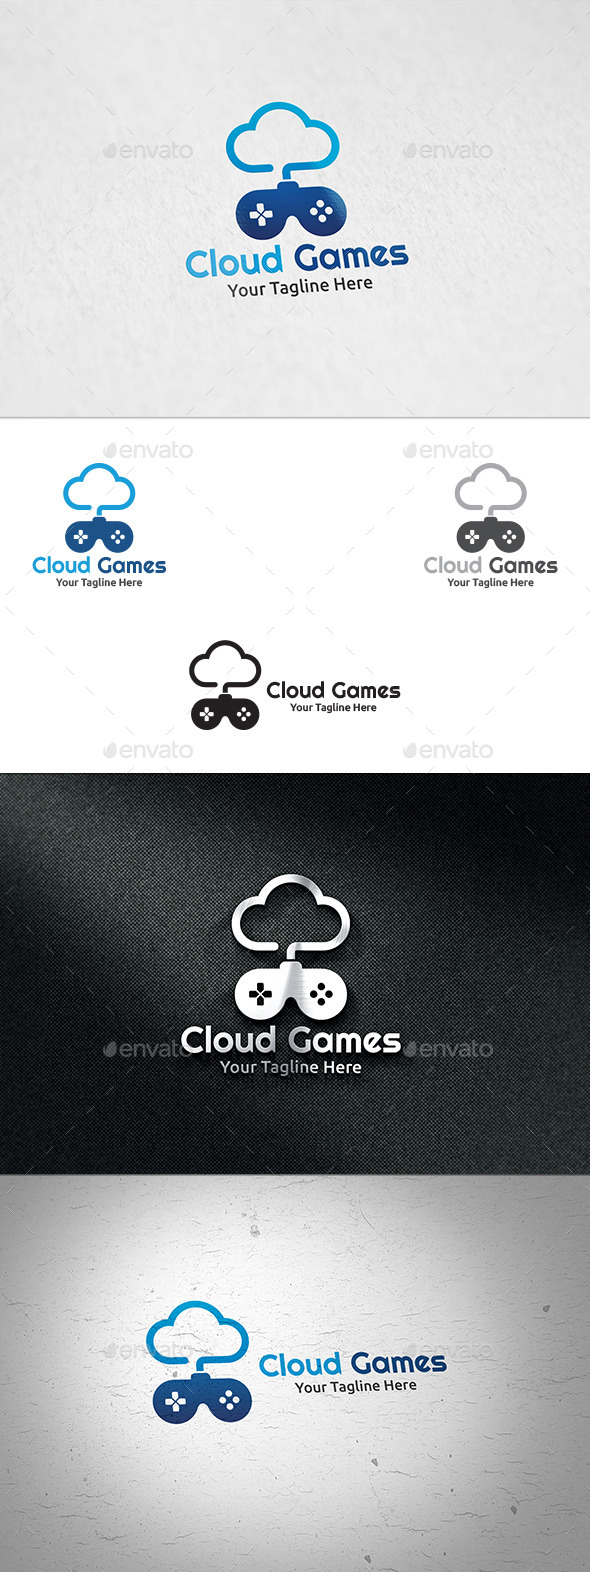 Cloud Games Logo